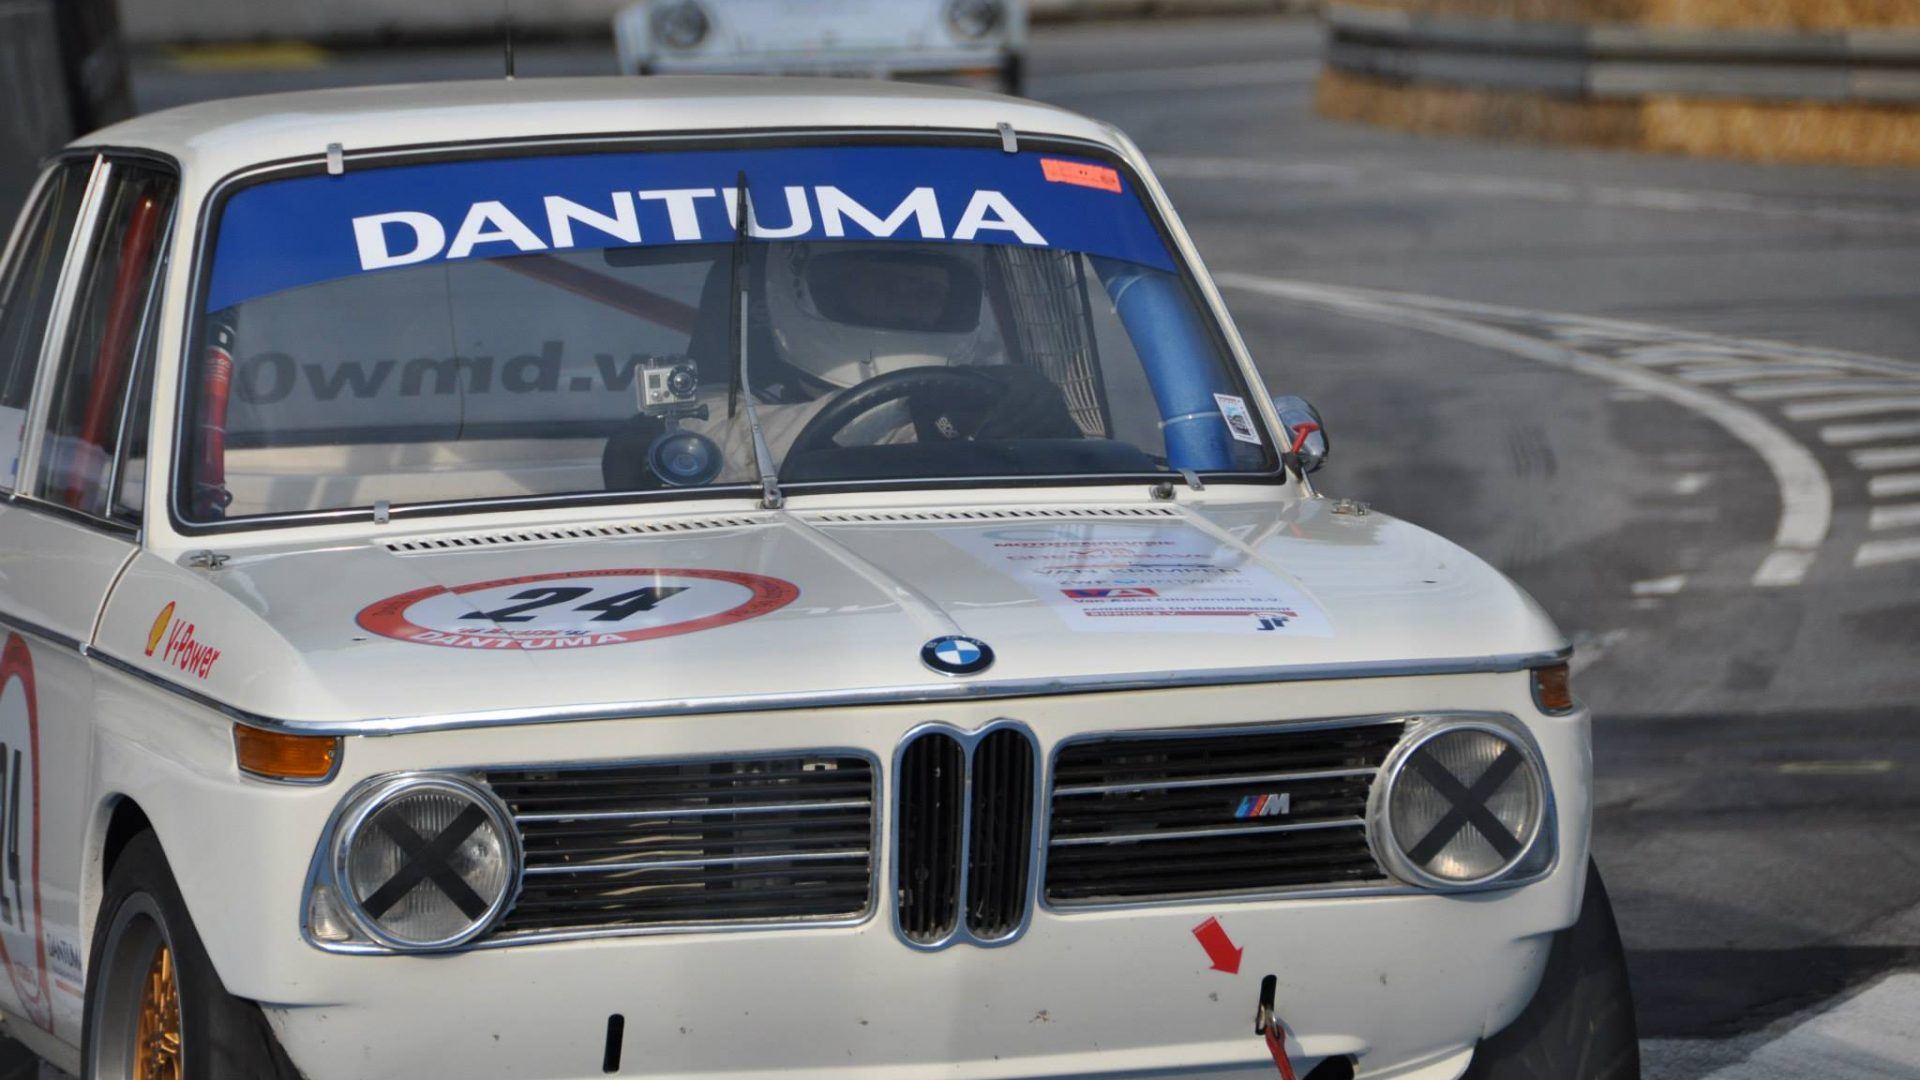 lupuRace - Classic BMW race and rally cars